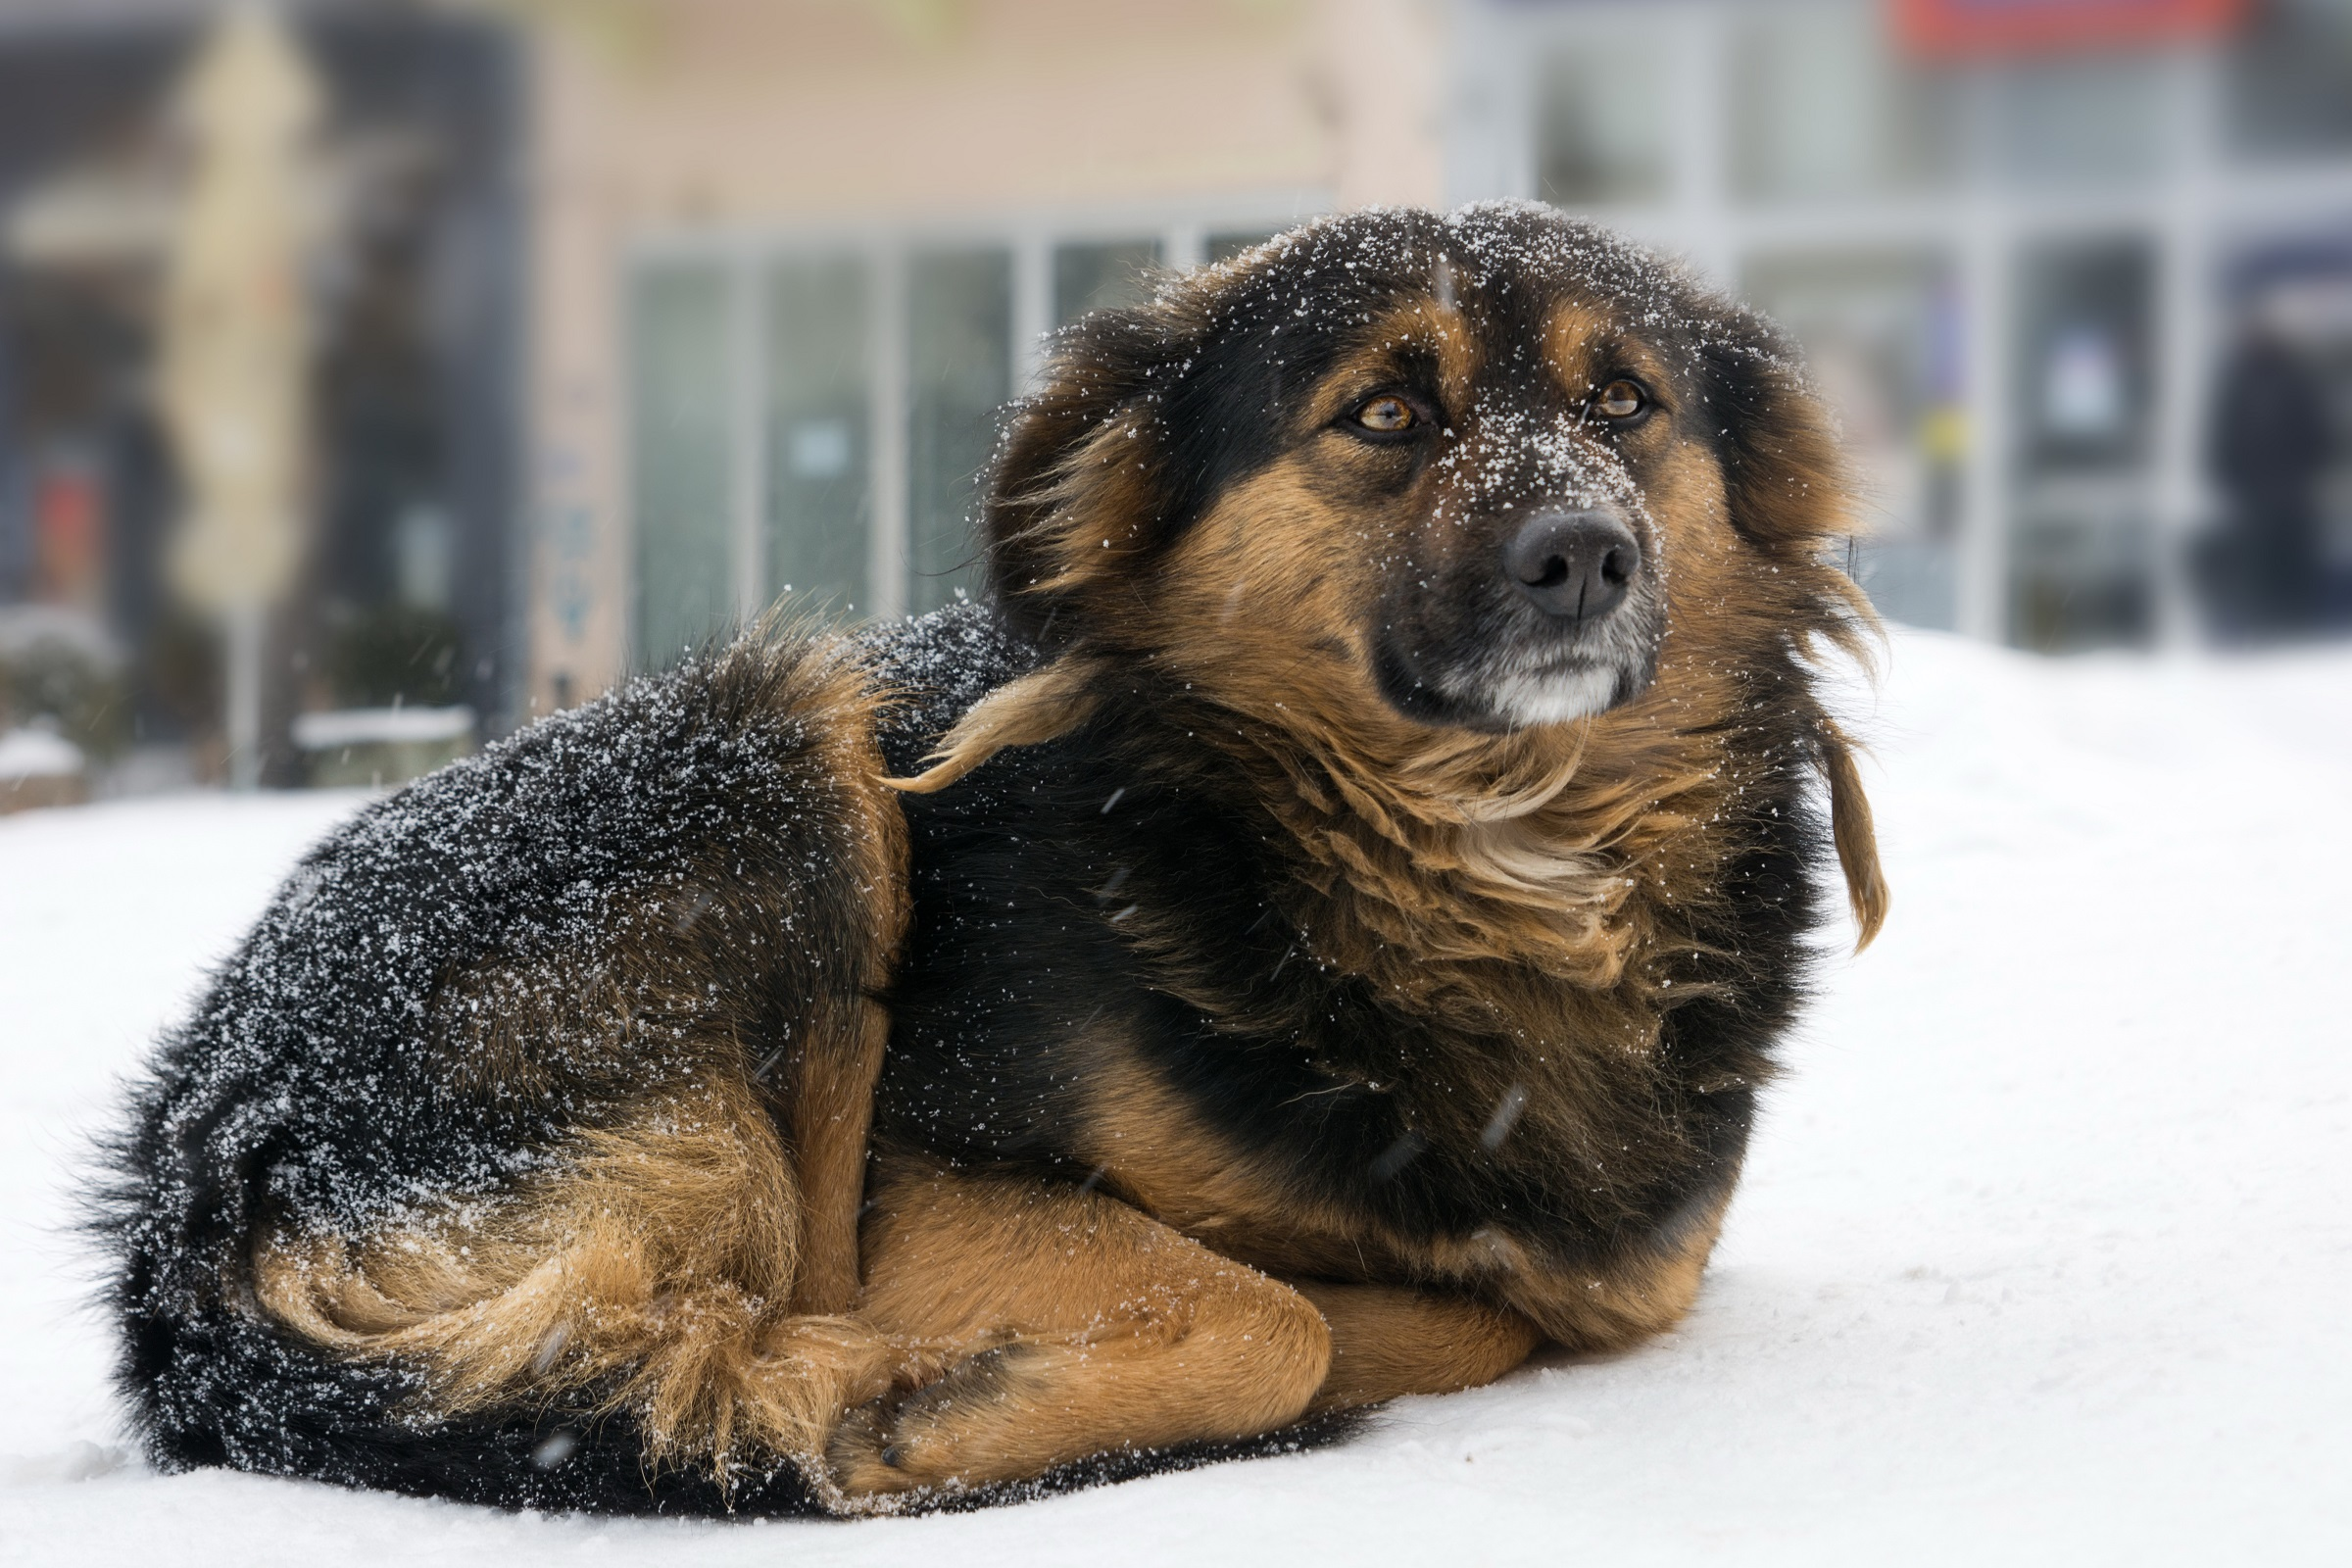 Keep your pets safe during winter weather